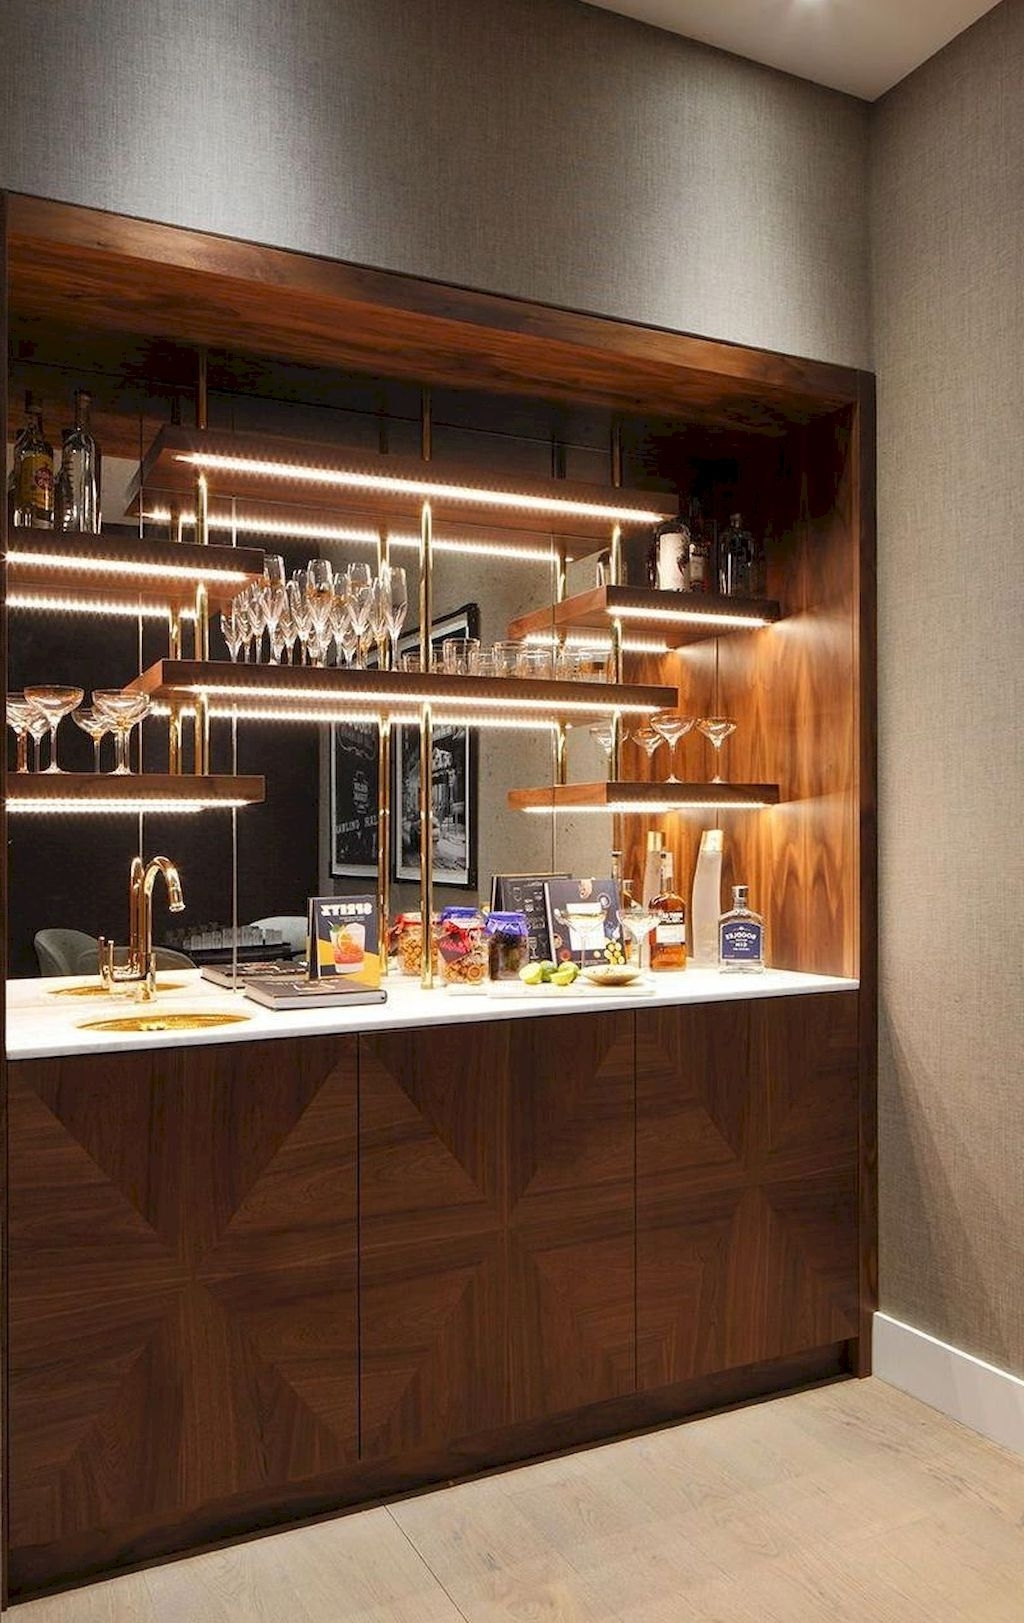 Attractive Can Including A Dwelling Mini Bar Make You Safer 10+ Small Living Room With Minibar Inspirations